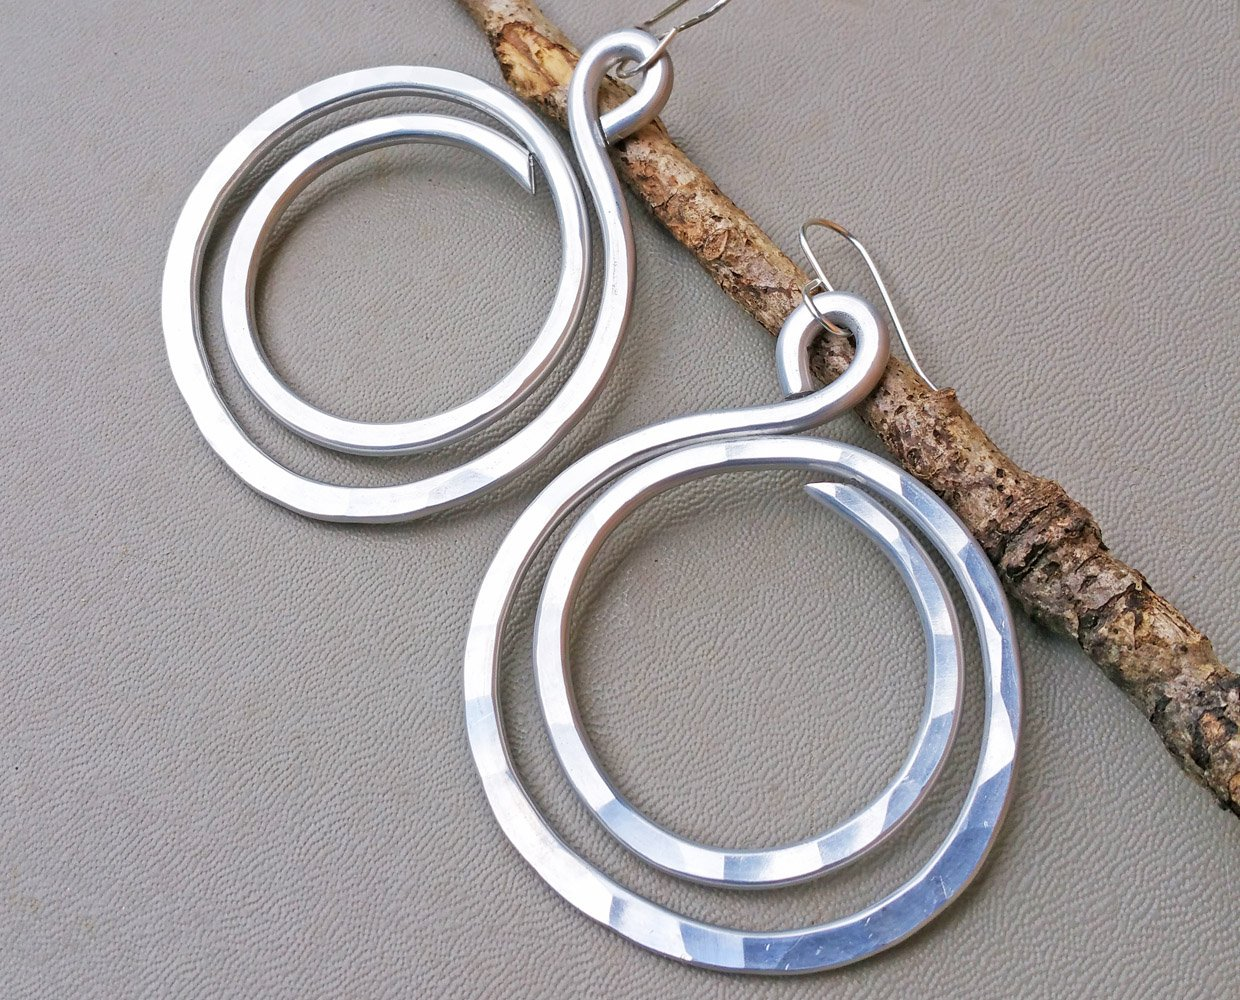 Very Big Double Hoop Aluminum Earrings, Light Weight Statement Jewelry Handmade in Oregon USA